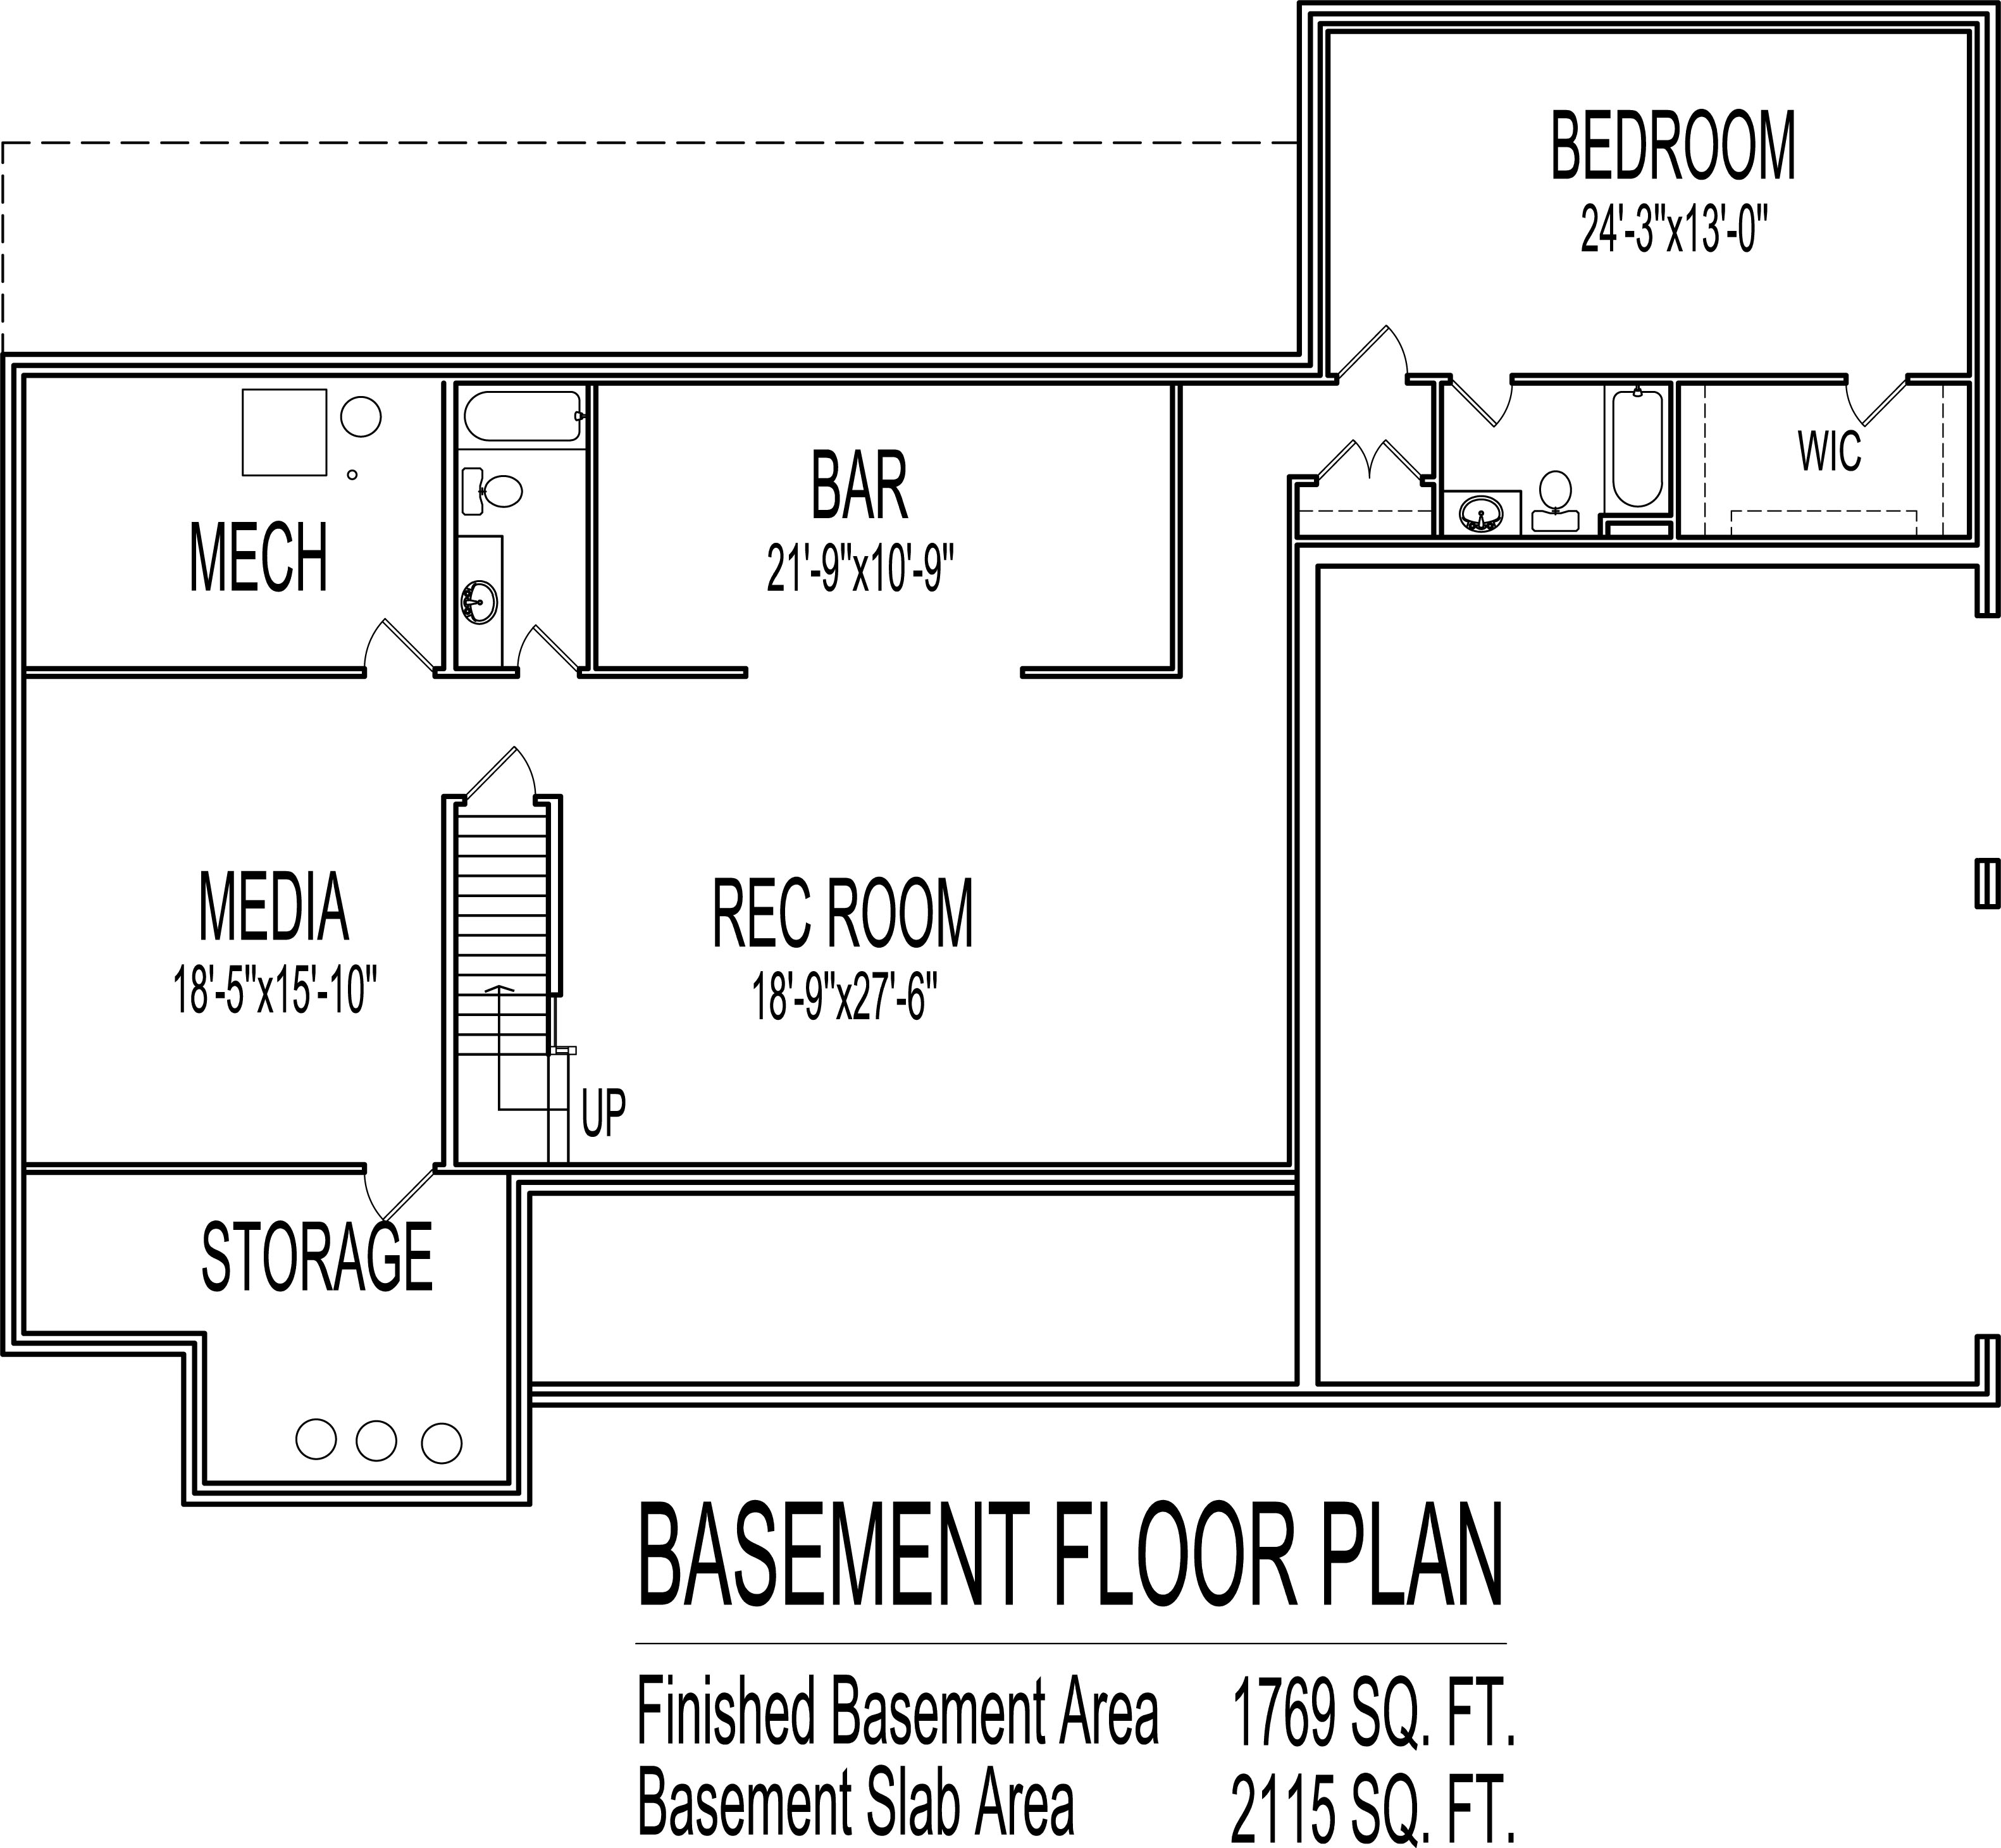 Low cost single story 4 bedroom house floor plans country farm 2200 sf - One level house plans with basement paint ...